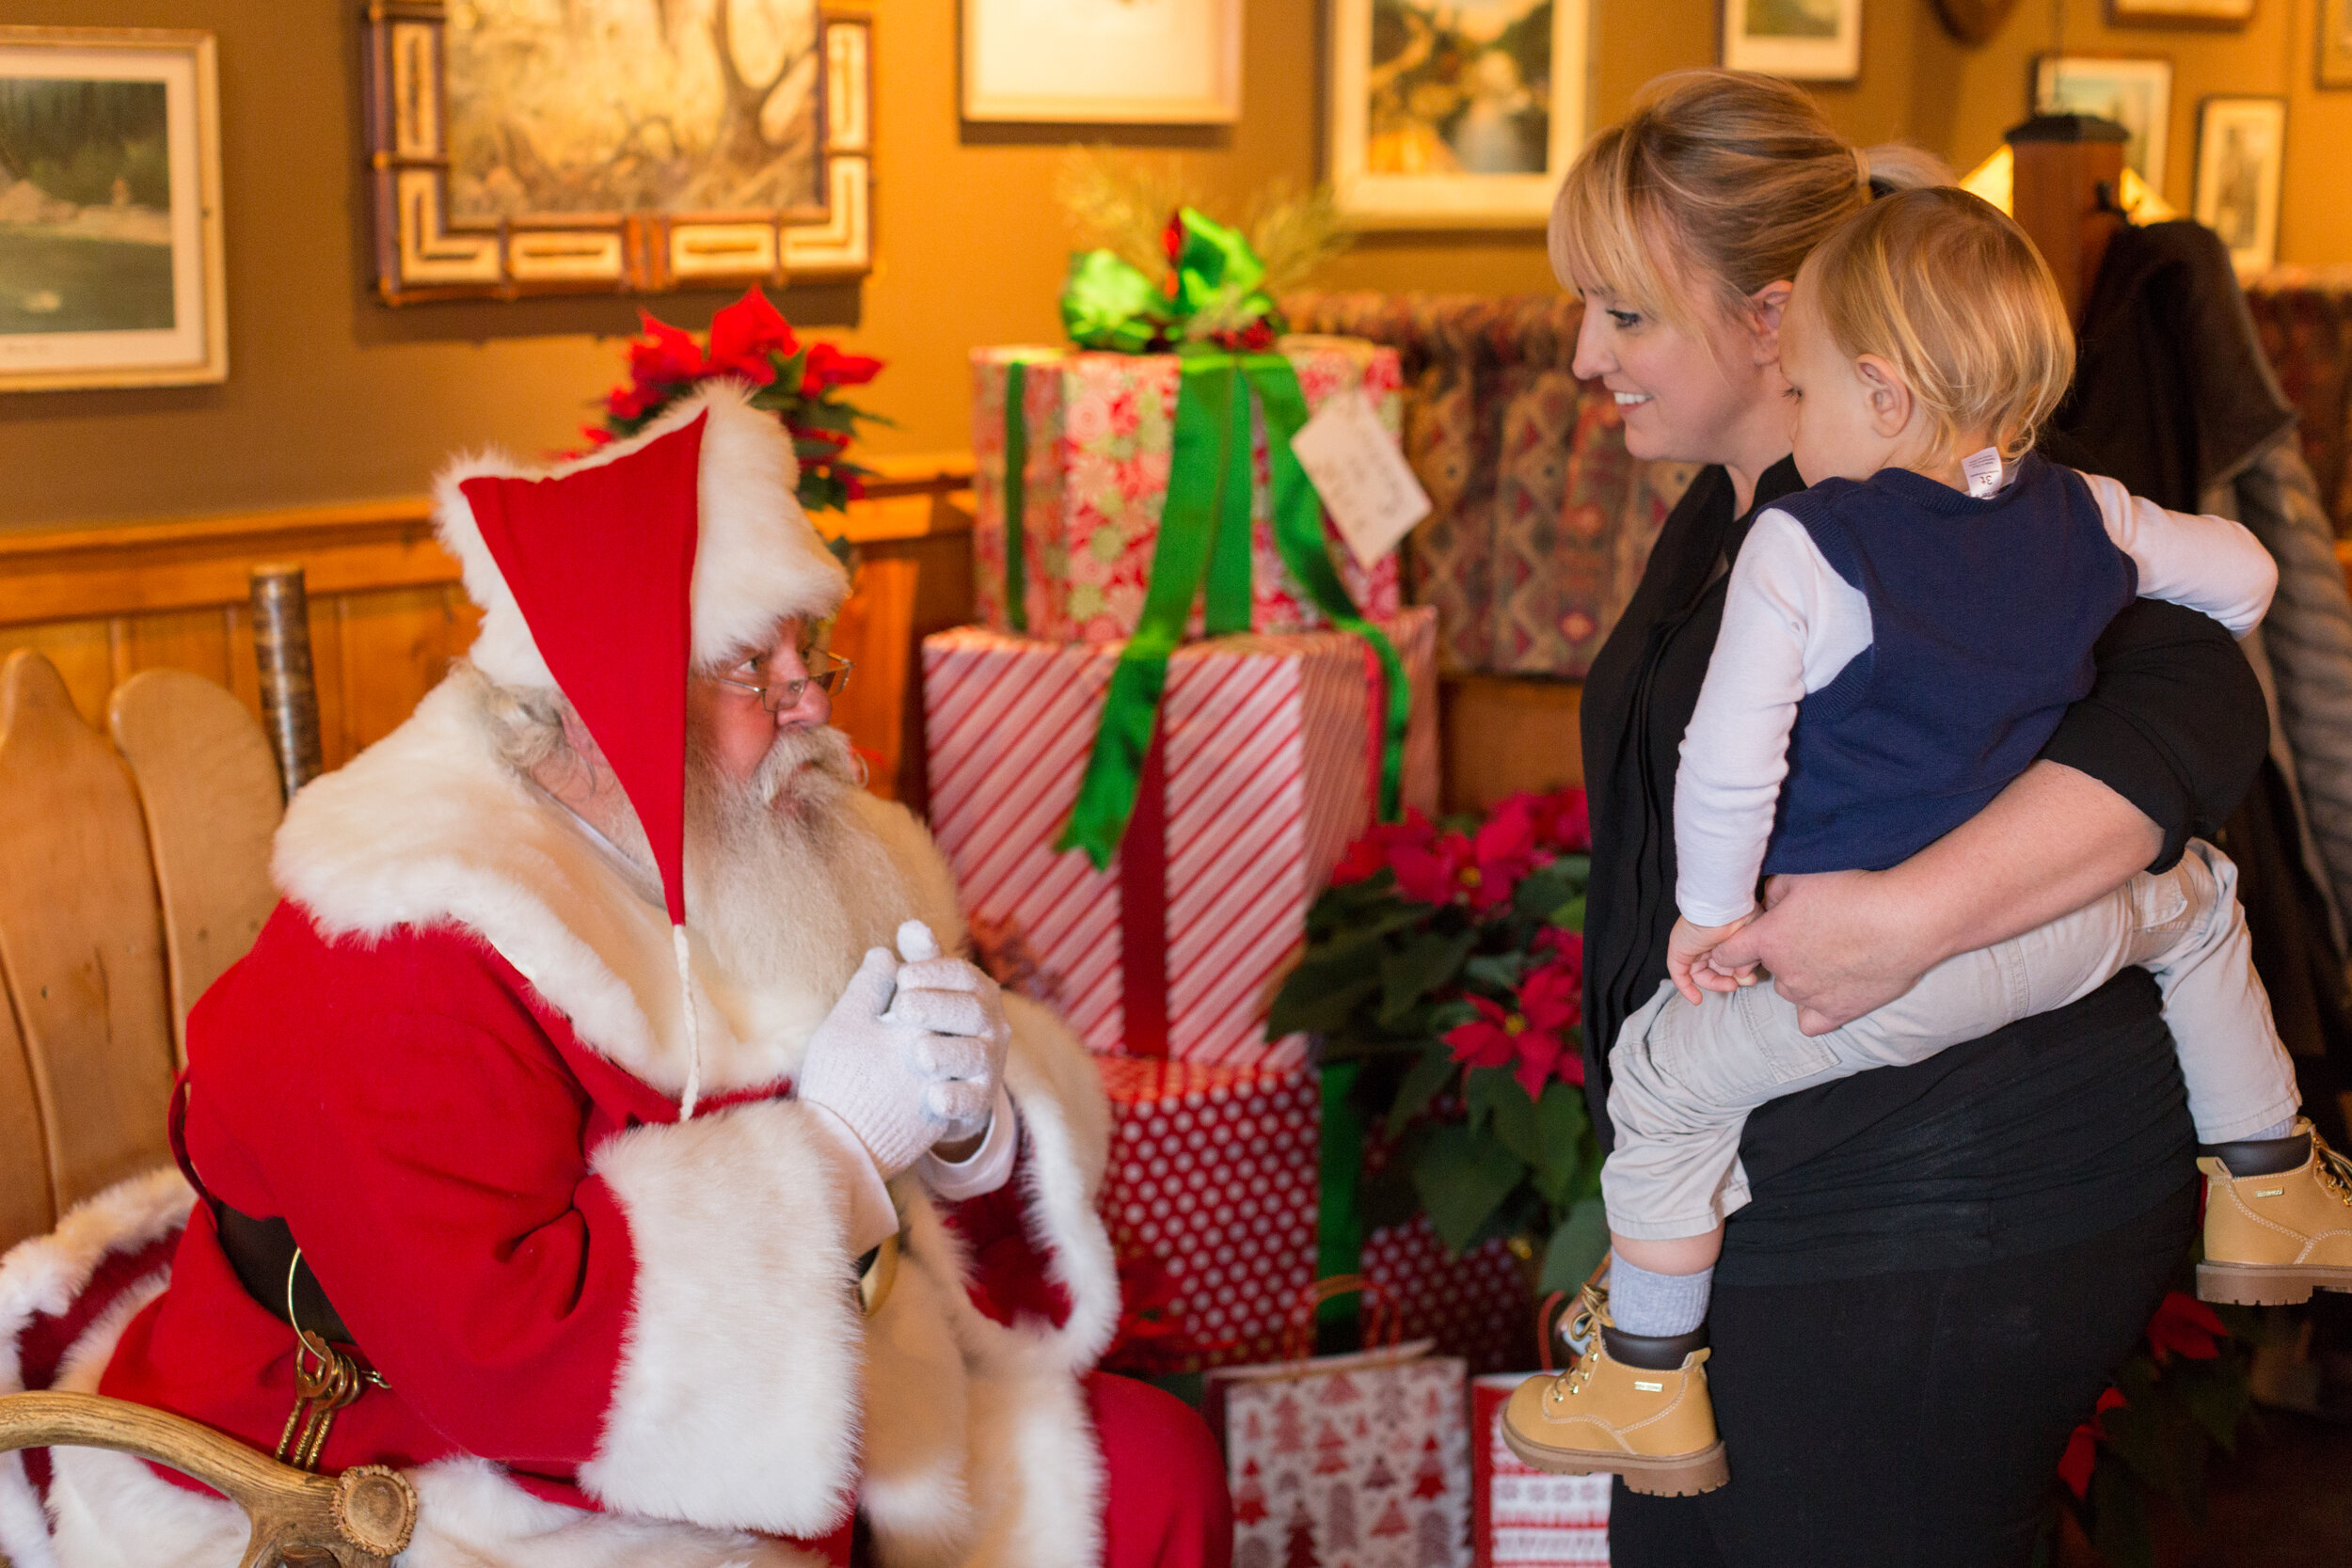 - Mark your calendars; we will be hosting our Santa Brunch again this holiday season!Santa will be coming to town to visit Deadwood Bar & Grill on Sunday, December 8, from 10 am to 2 pm. We will be serving our brunch menu alongside our regular menu.Reservations are required for this exciting event. Call us today to reserve your spot! 248-347-4353